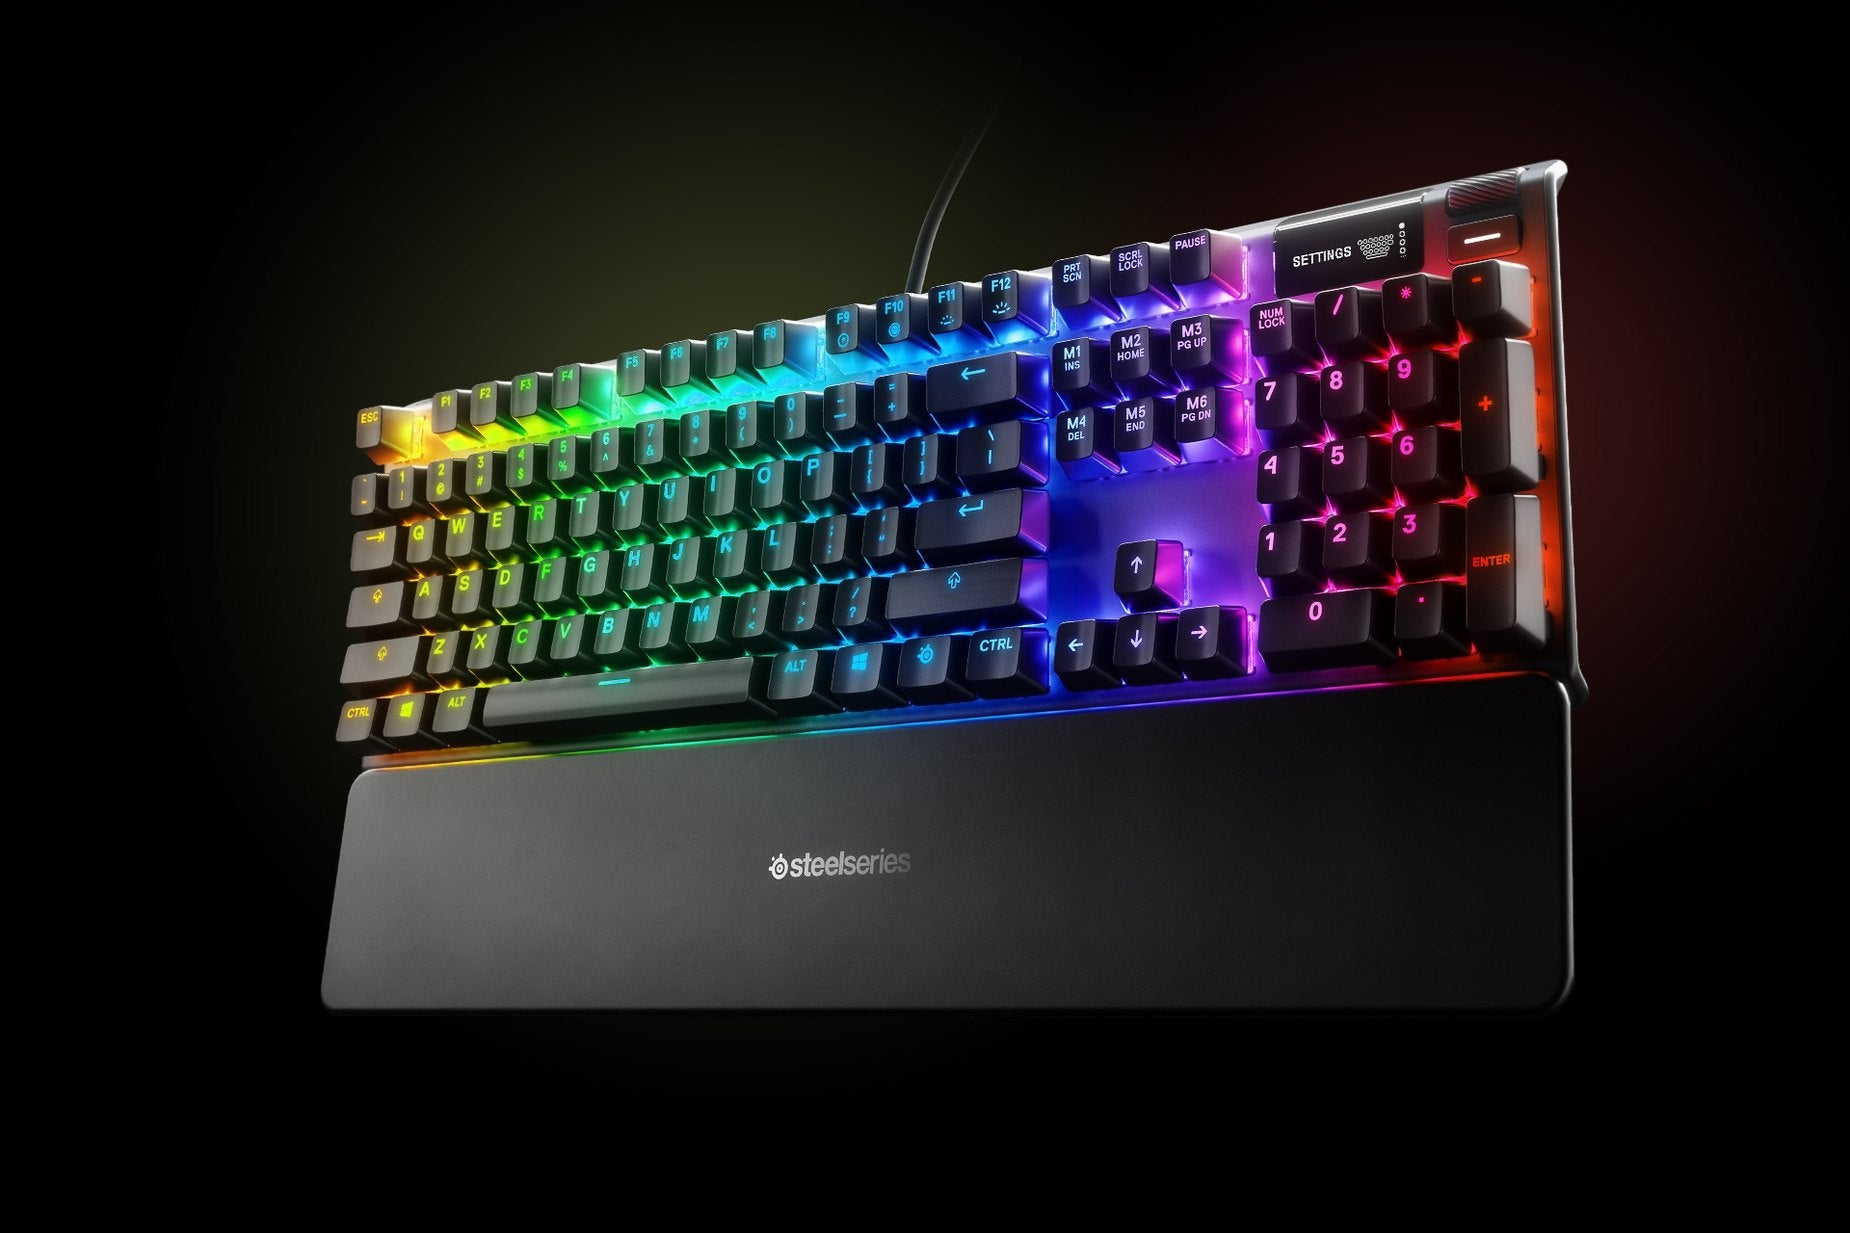 SteelSeries Apex 7 Gaming Keyboard